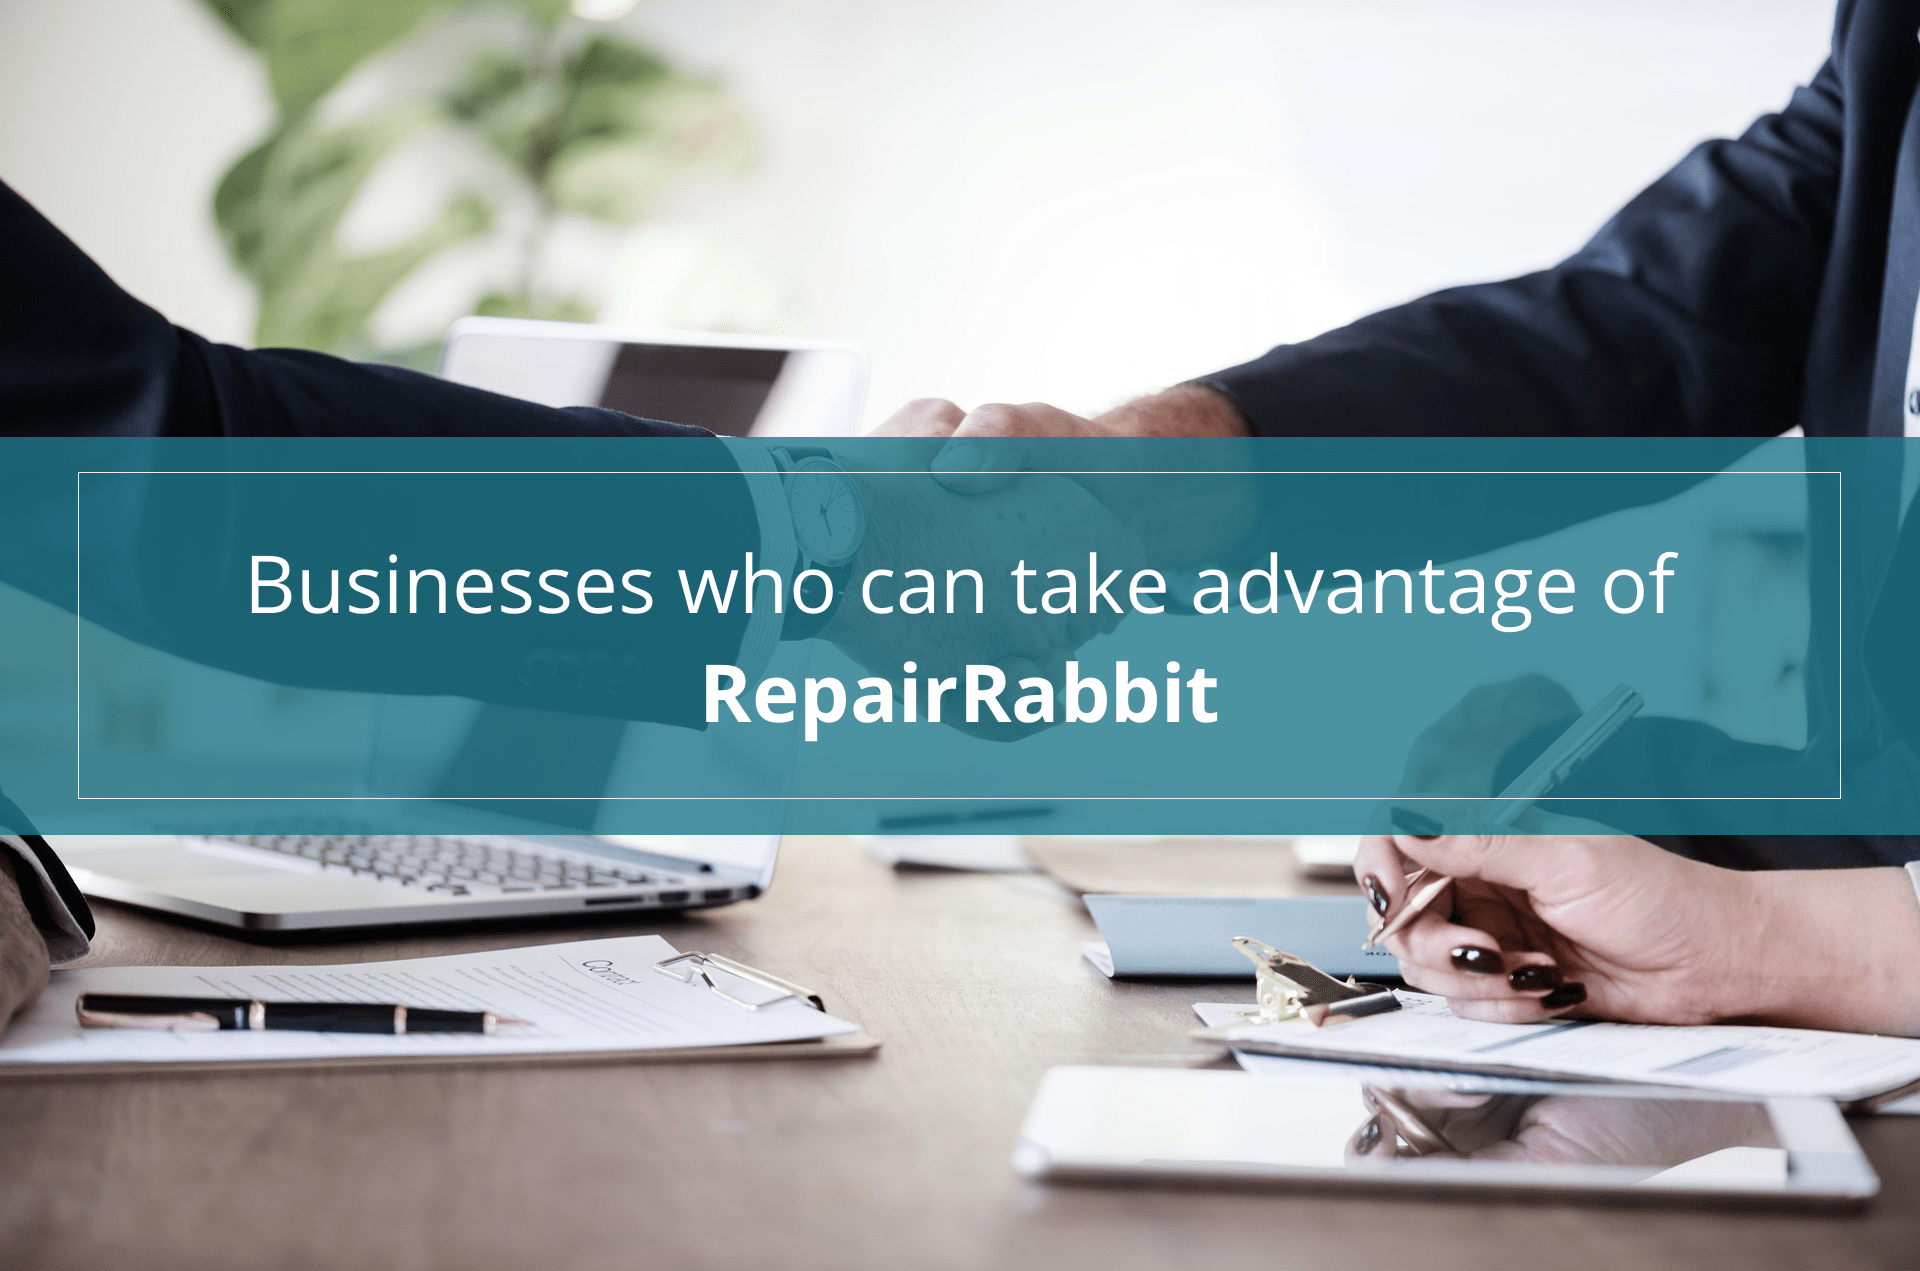 businesses who can take advantage of RepairRabbit software